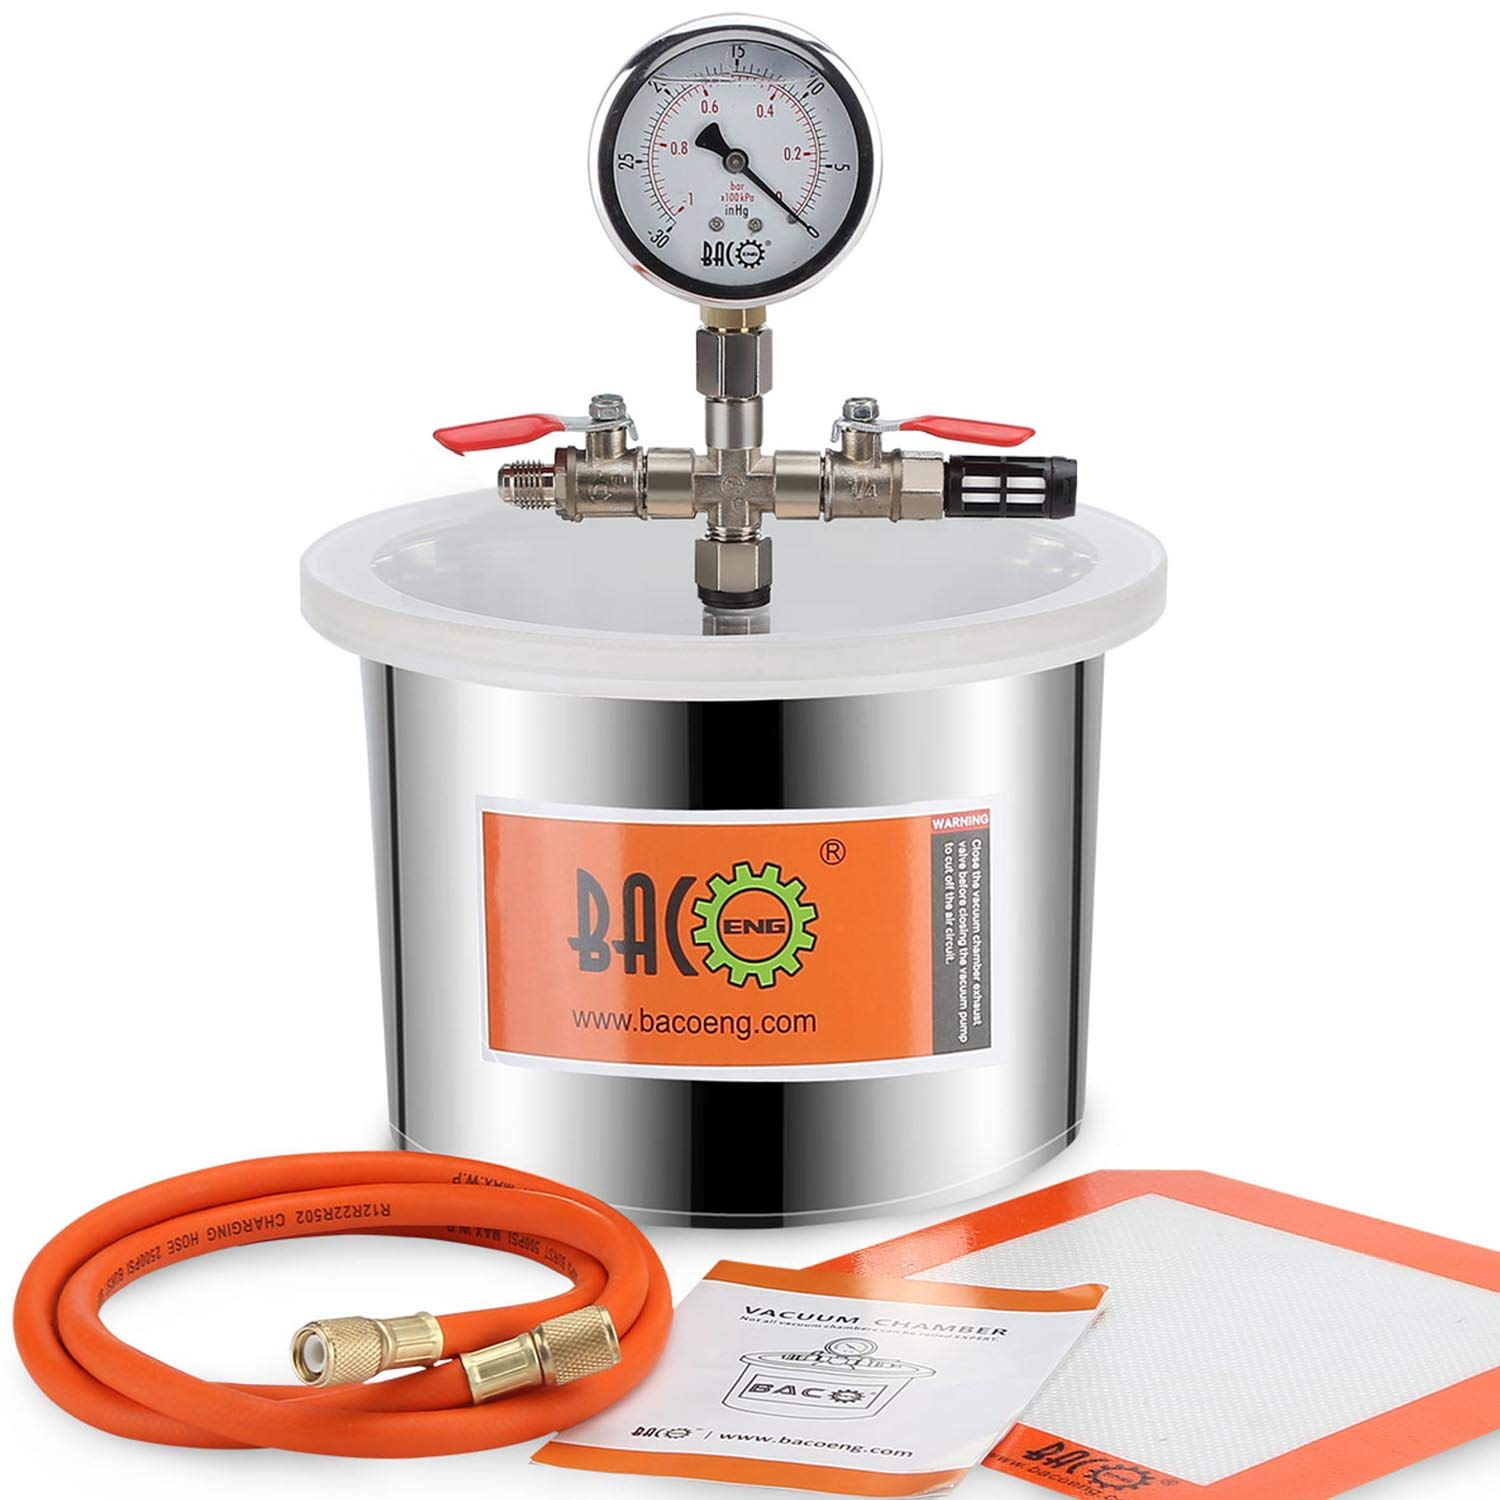 BACOENG 1.5 Gallon Stainless Steel Vacuum Chamber Silicone Kit for Degassing Resins, Silicone and Epoxies by BACOENG